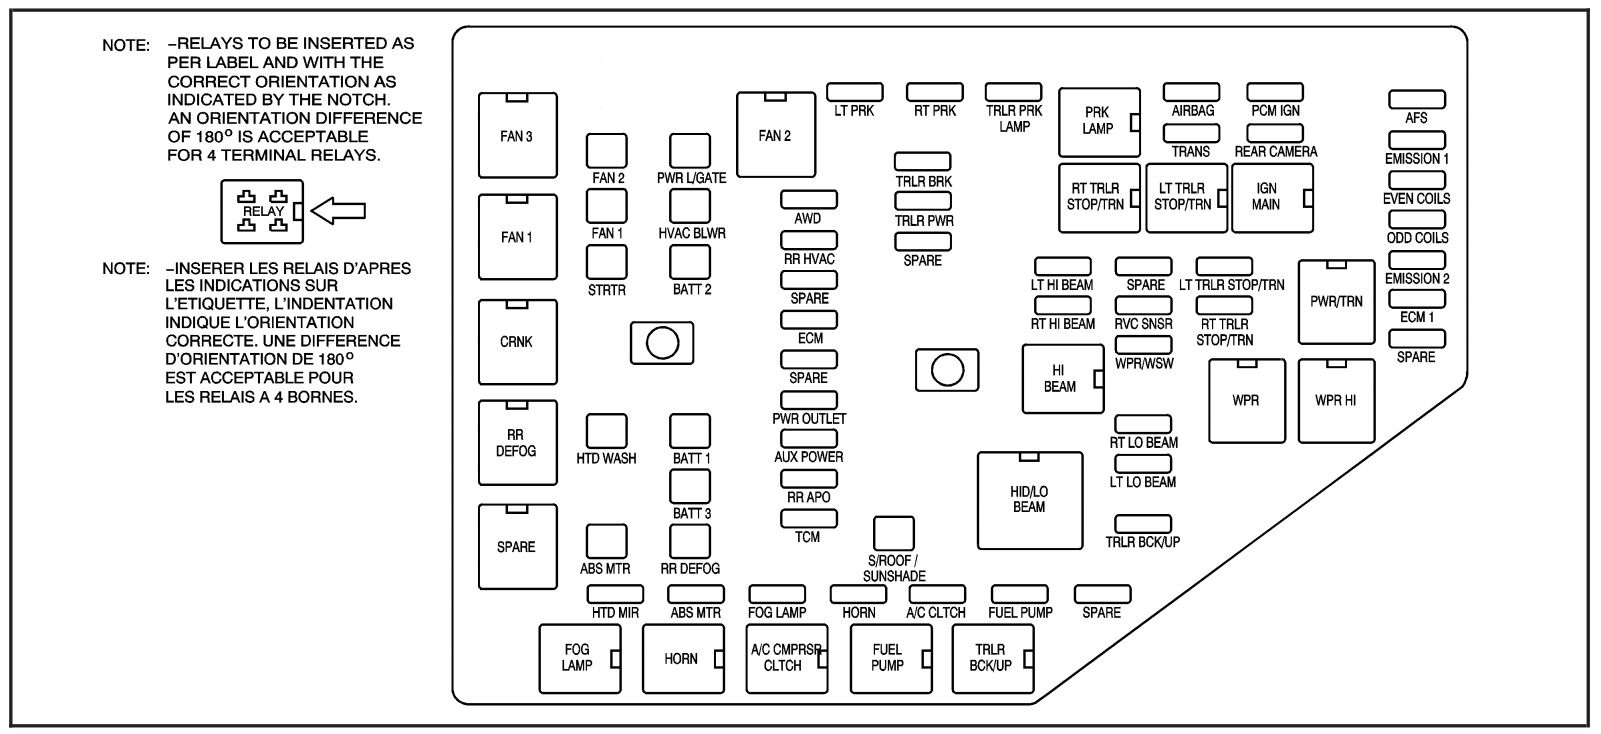 acadia fuse box diagram getting ready with wiring diagram Wiring Diagram for 2010 Dodge Ram 1500